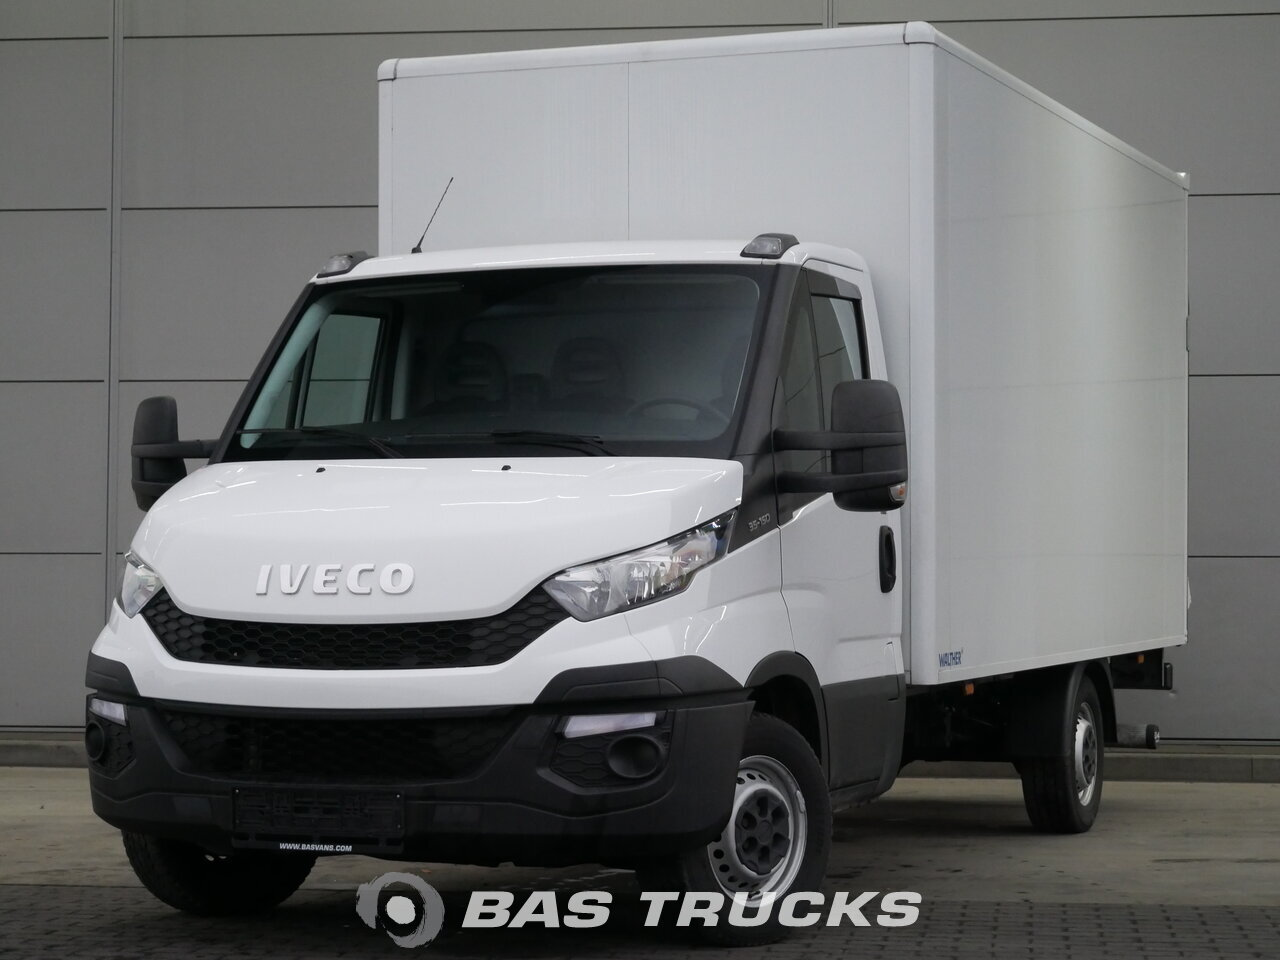 Iveco daily light commercial vehicle euro norm 5 20900 bas trucks photo of used light commercial vehicle iveco daily 2015 aloadofball Image collections